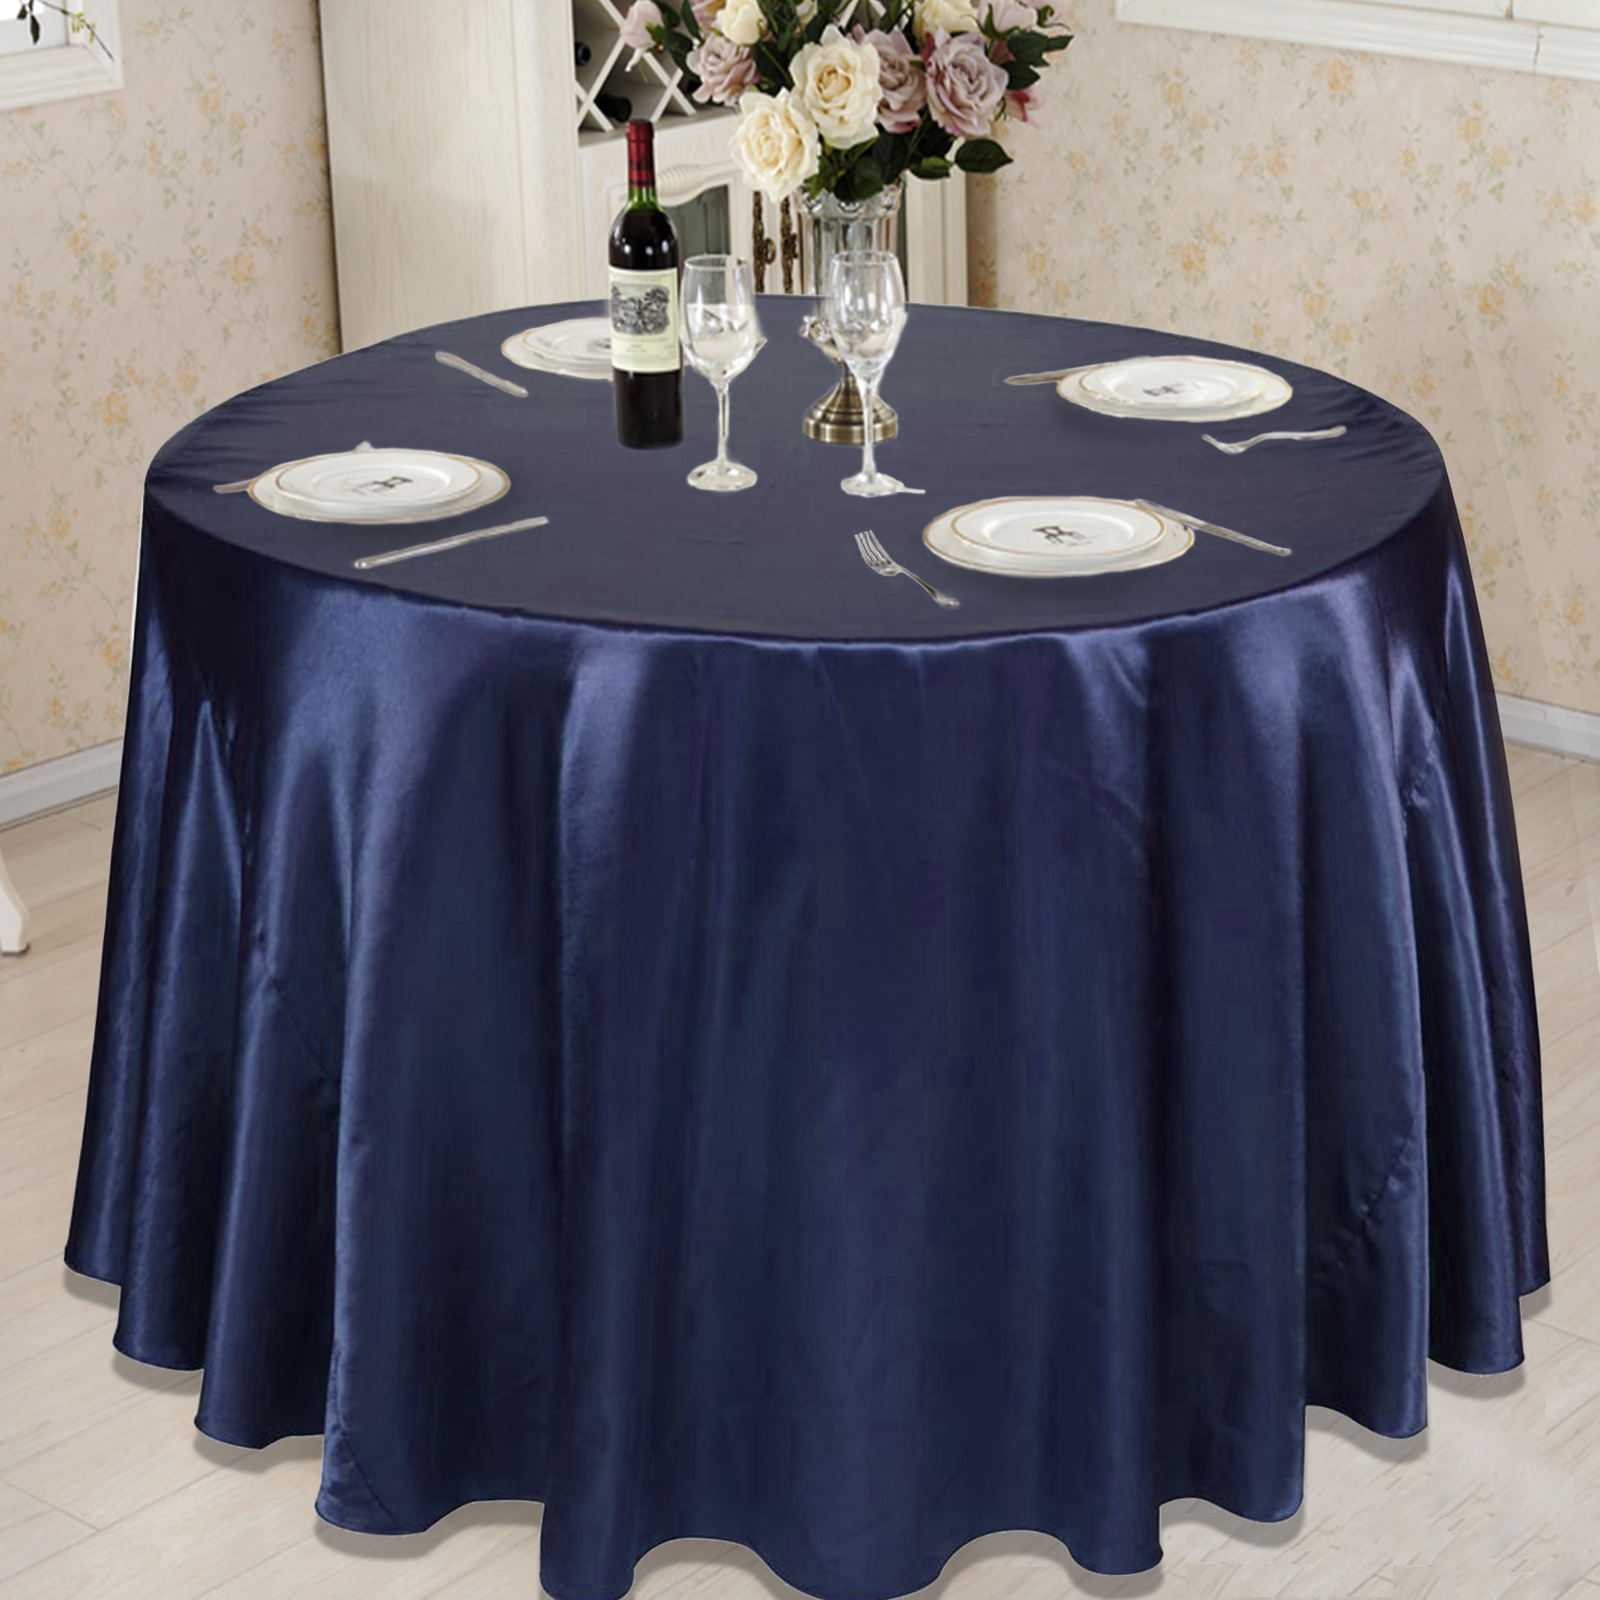 10pcs Lot Satin Table Cloth 90 108 120 Round Table Cover WholeSale Tableclothes For Wedding Event